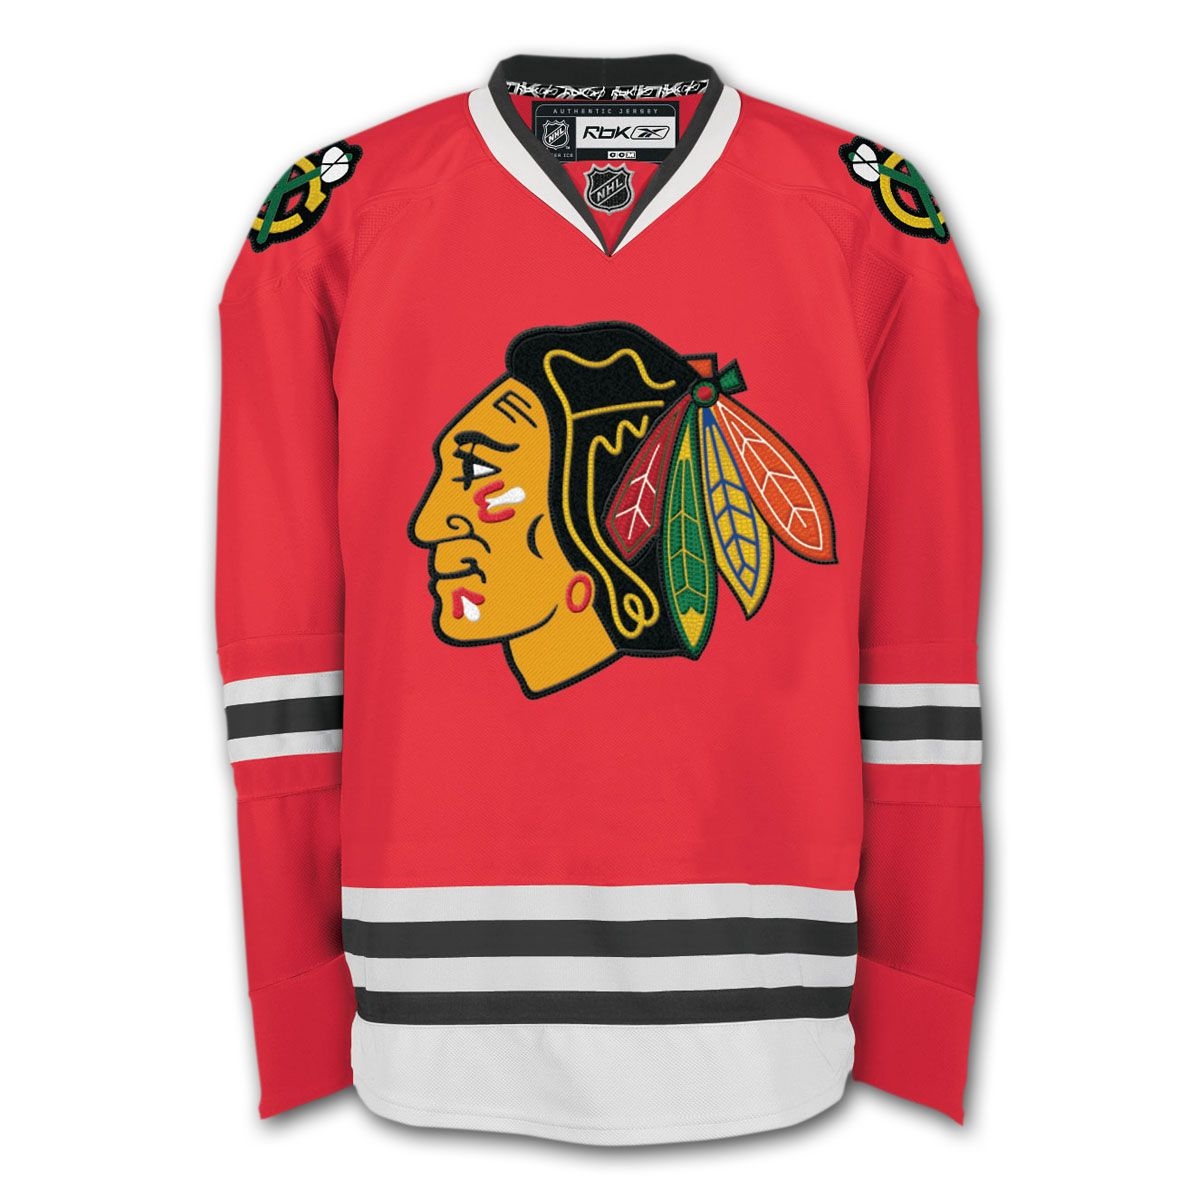 official nhl jerseys canada